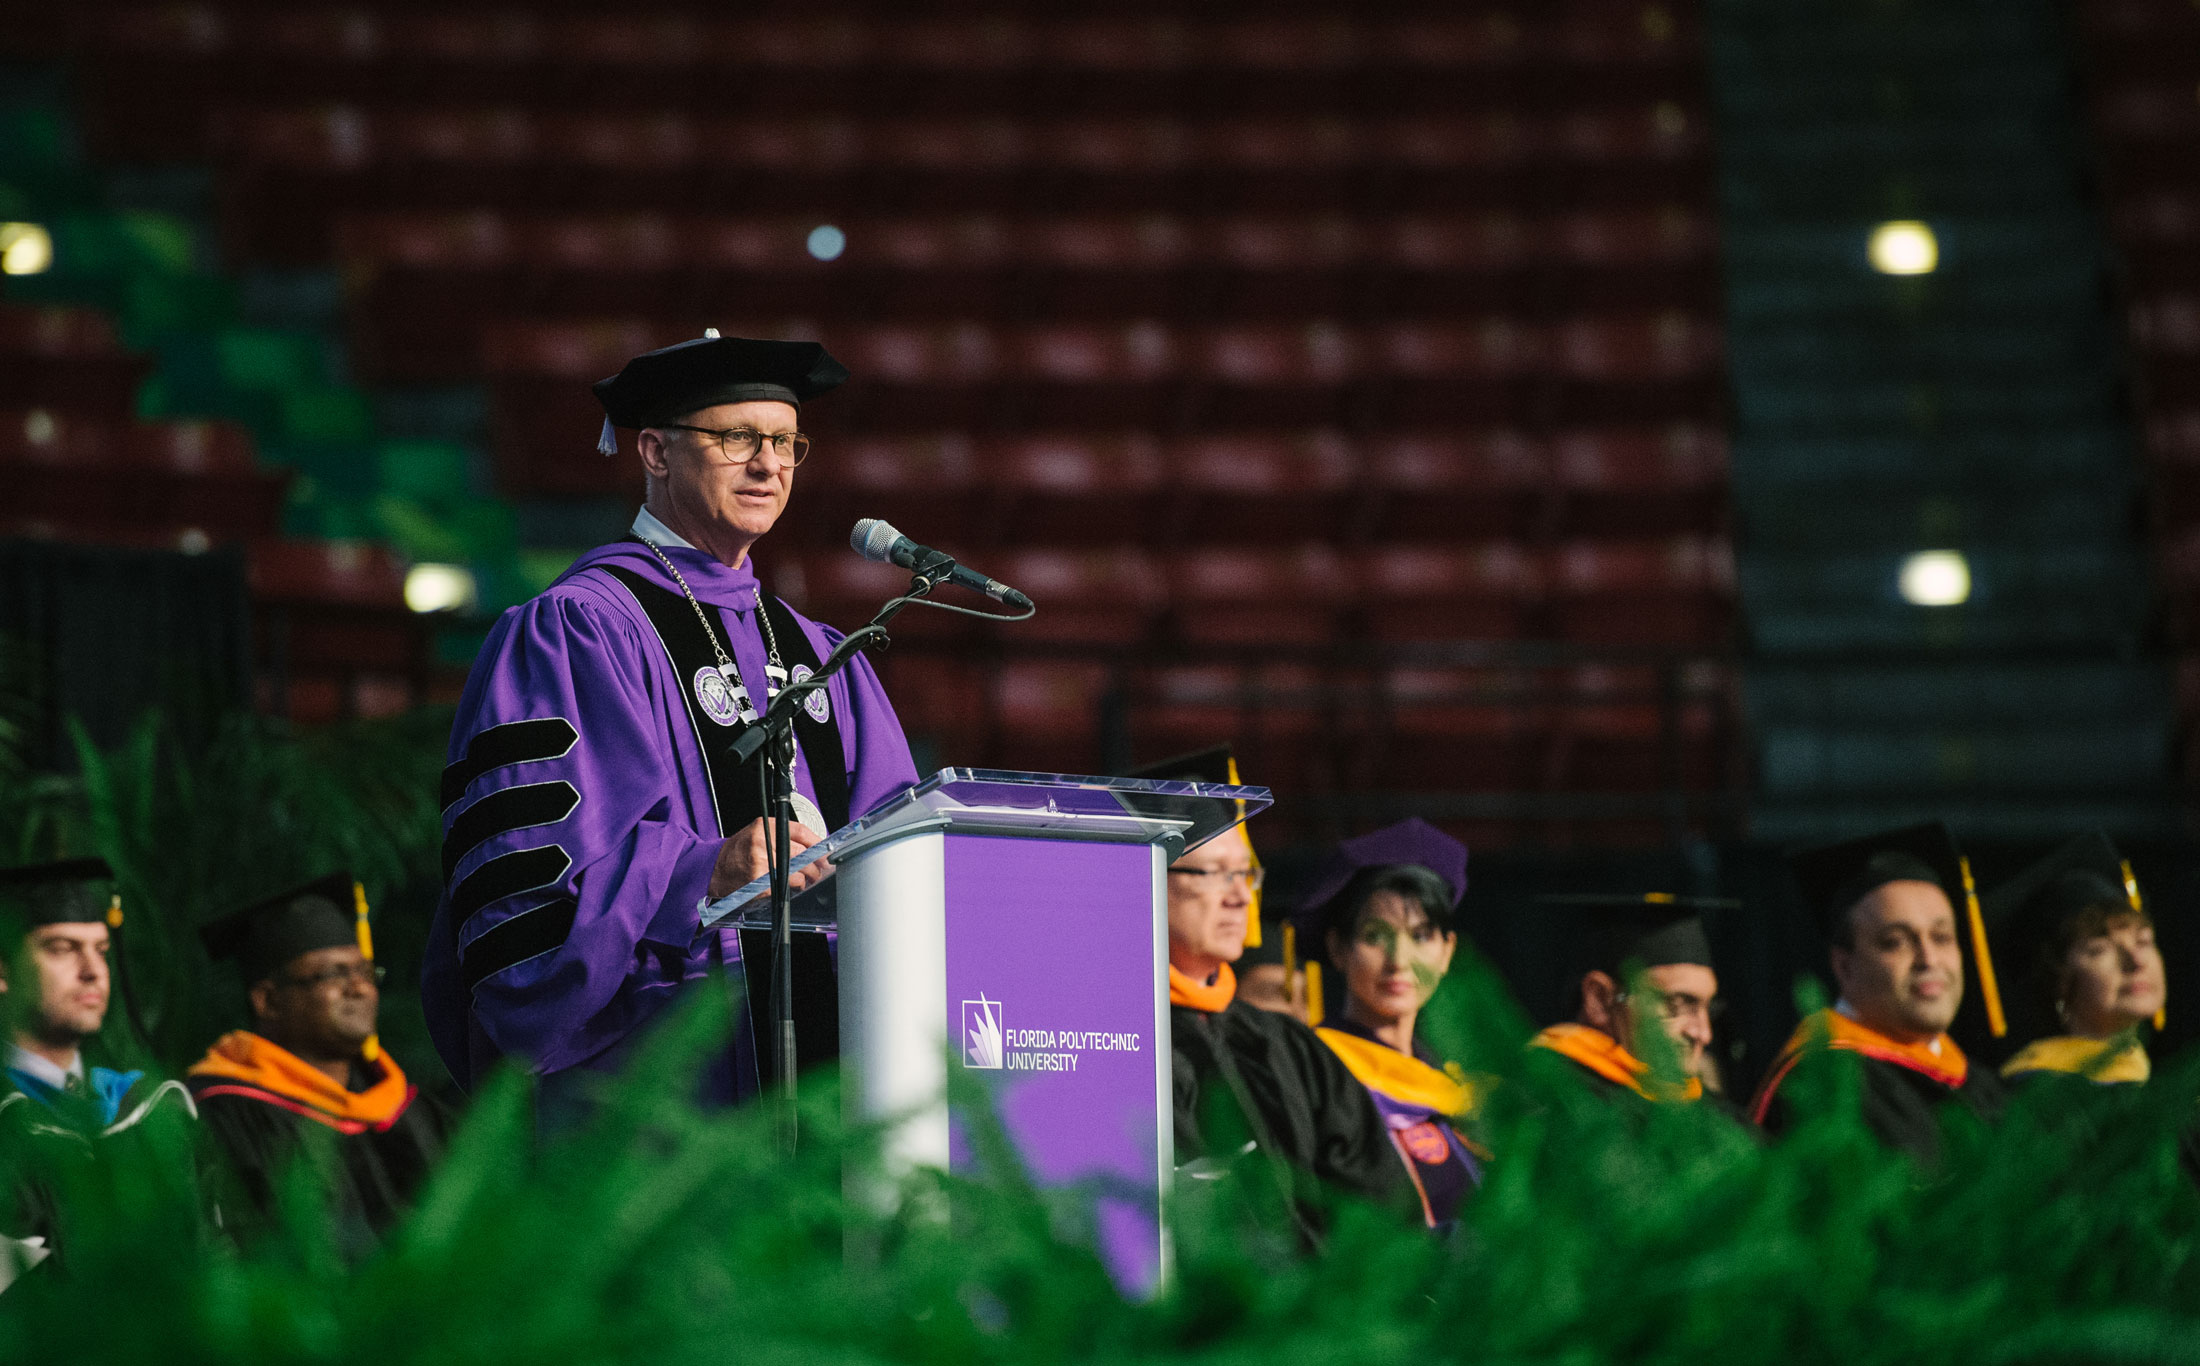 Florida Poly president appointed to prestigious European academy of doctors